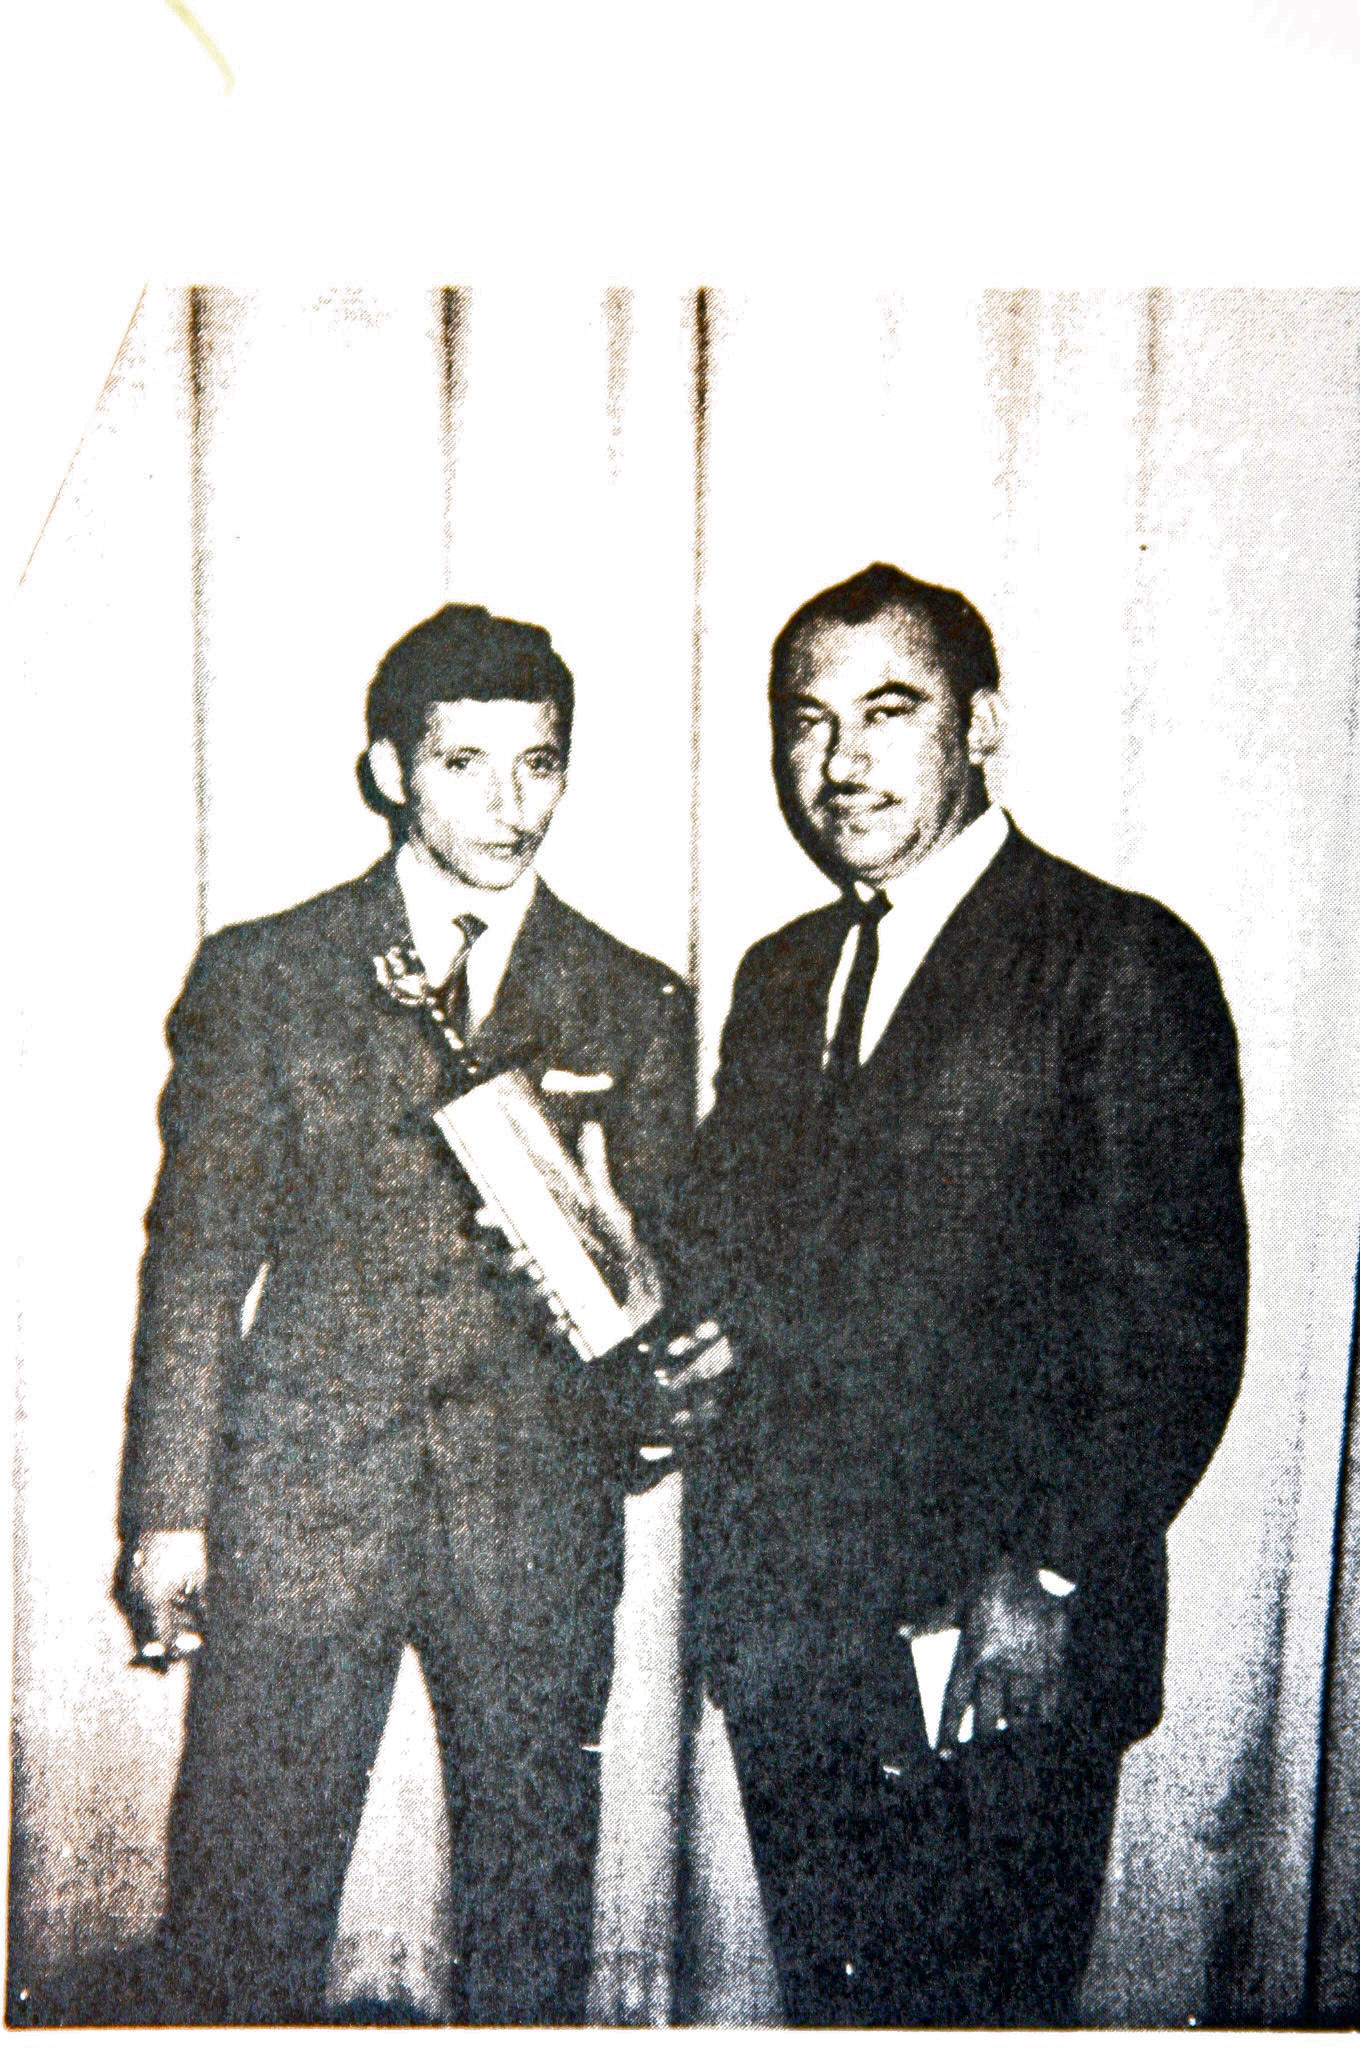 Agapito with his second trophy (San Jose, CA, 1966)